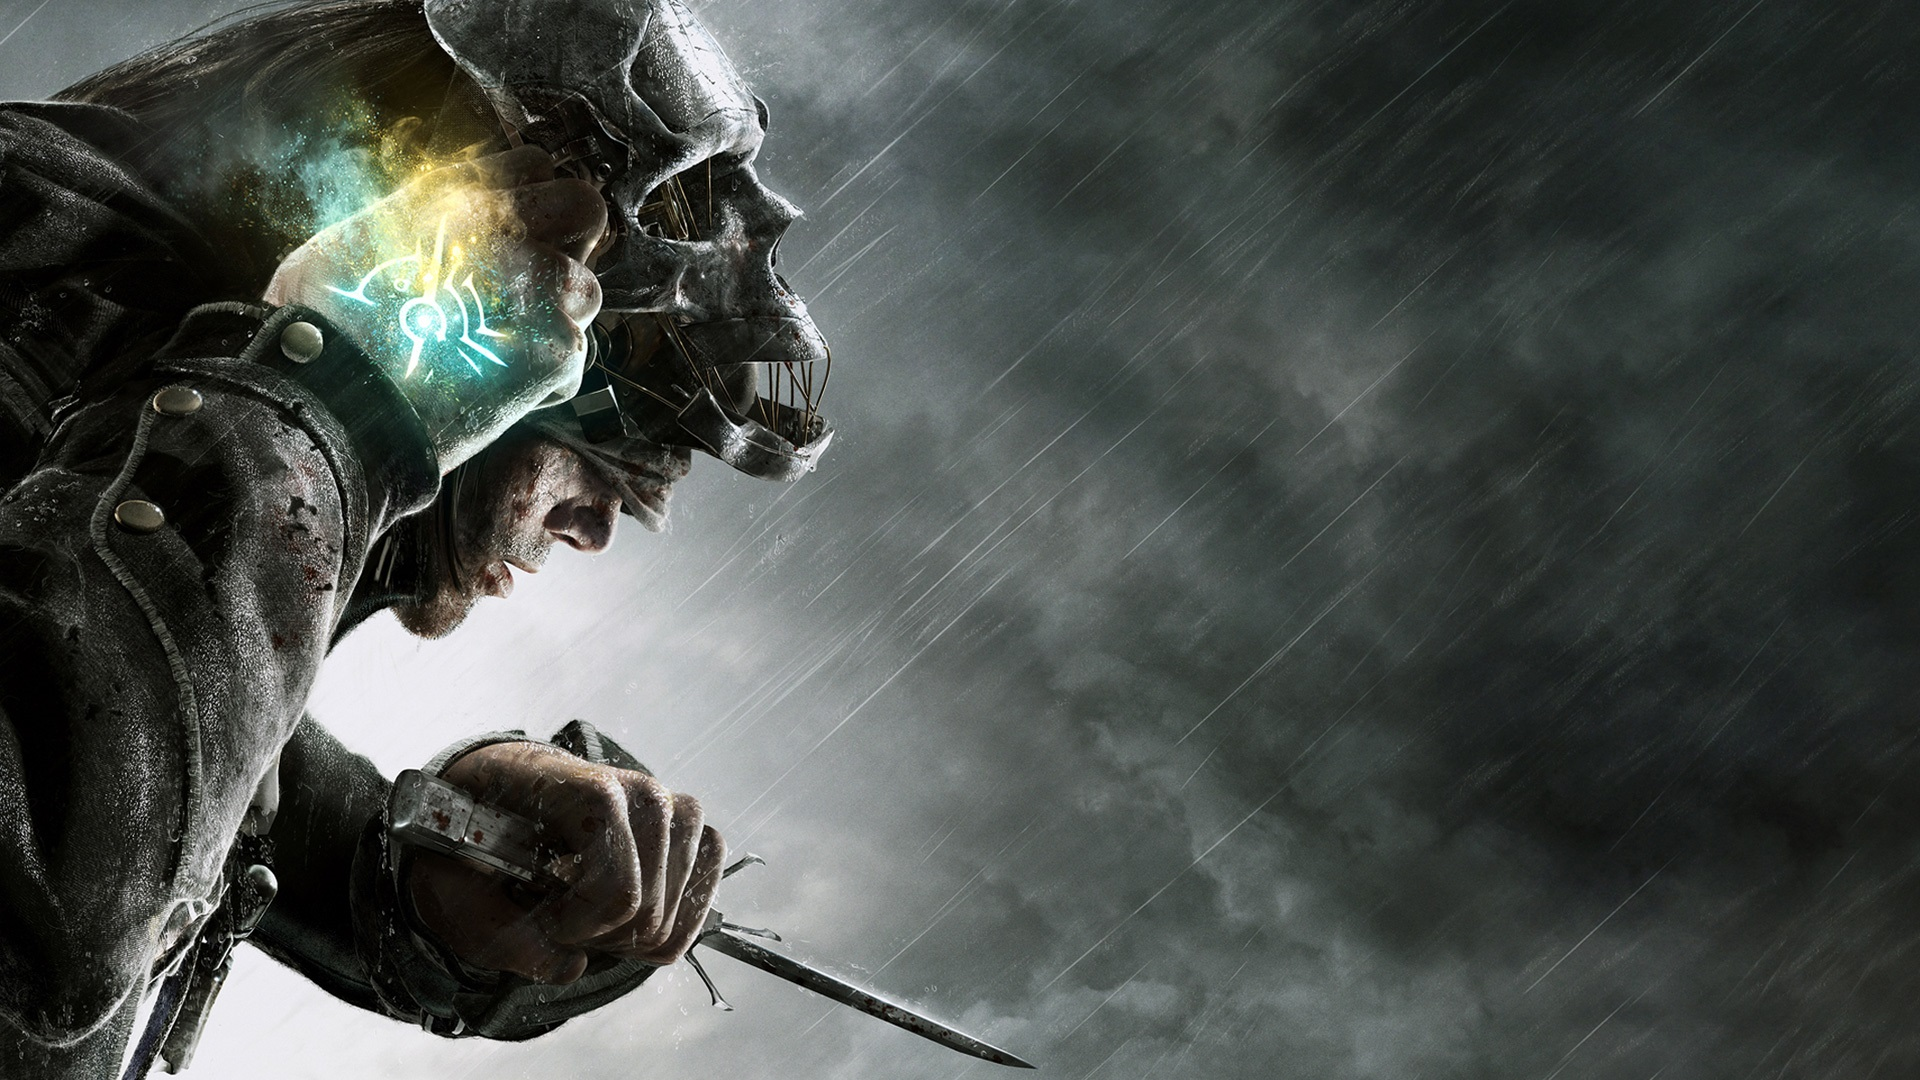 dishonored wallpaper 6